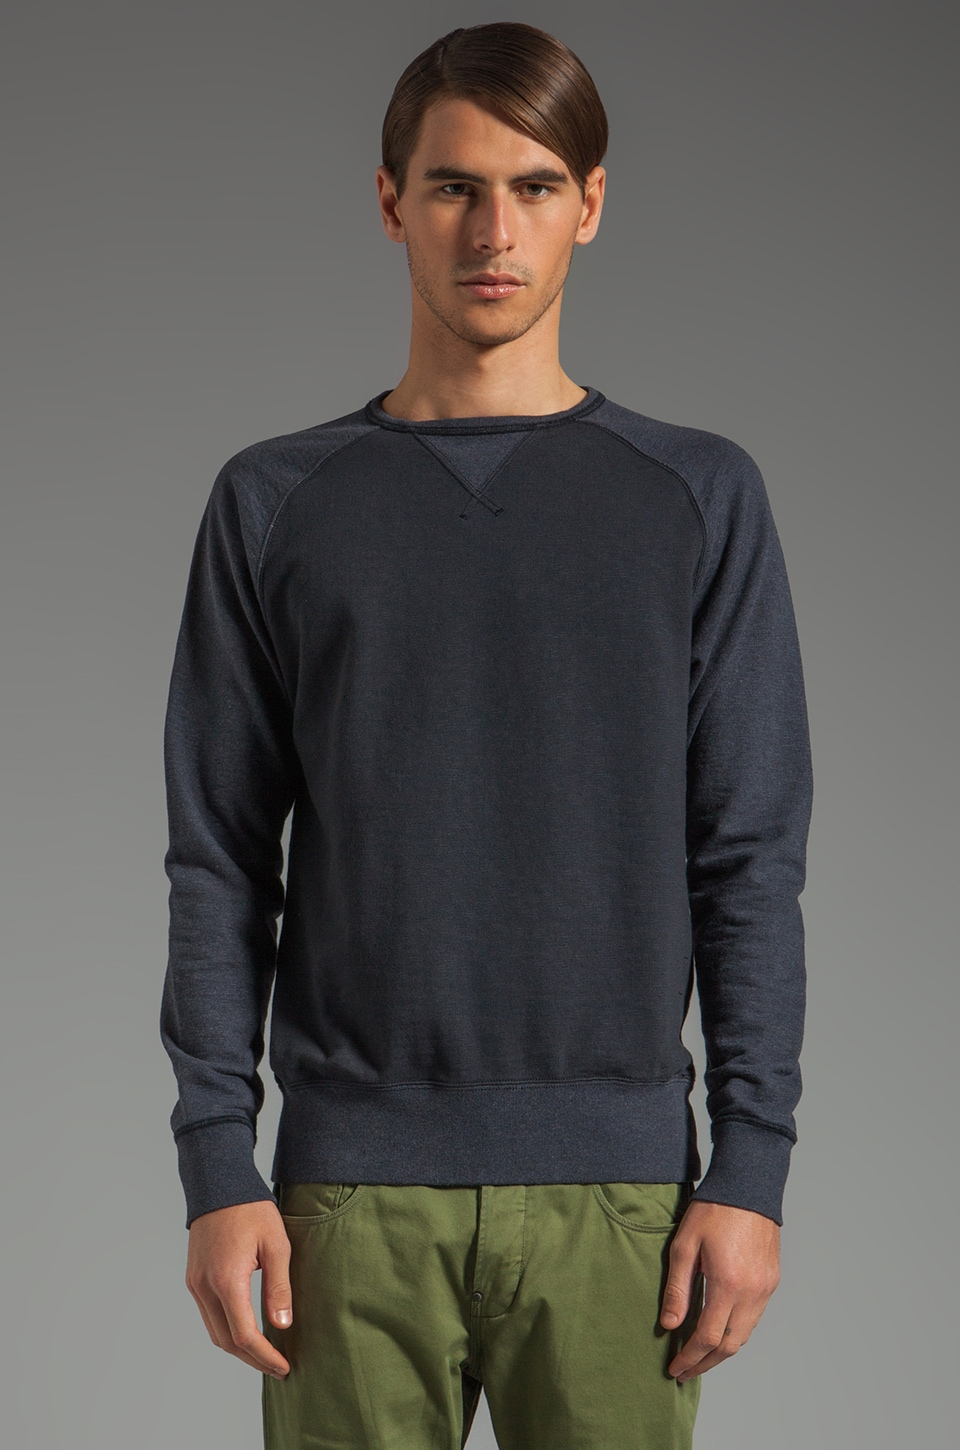 G-Star R Sweatshirt in Dark Navy